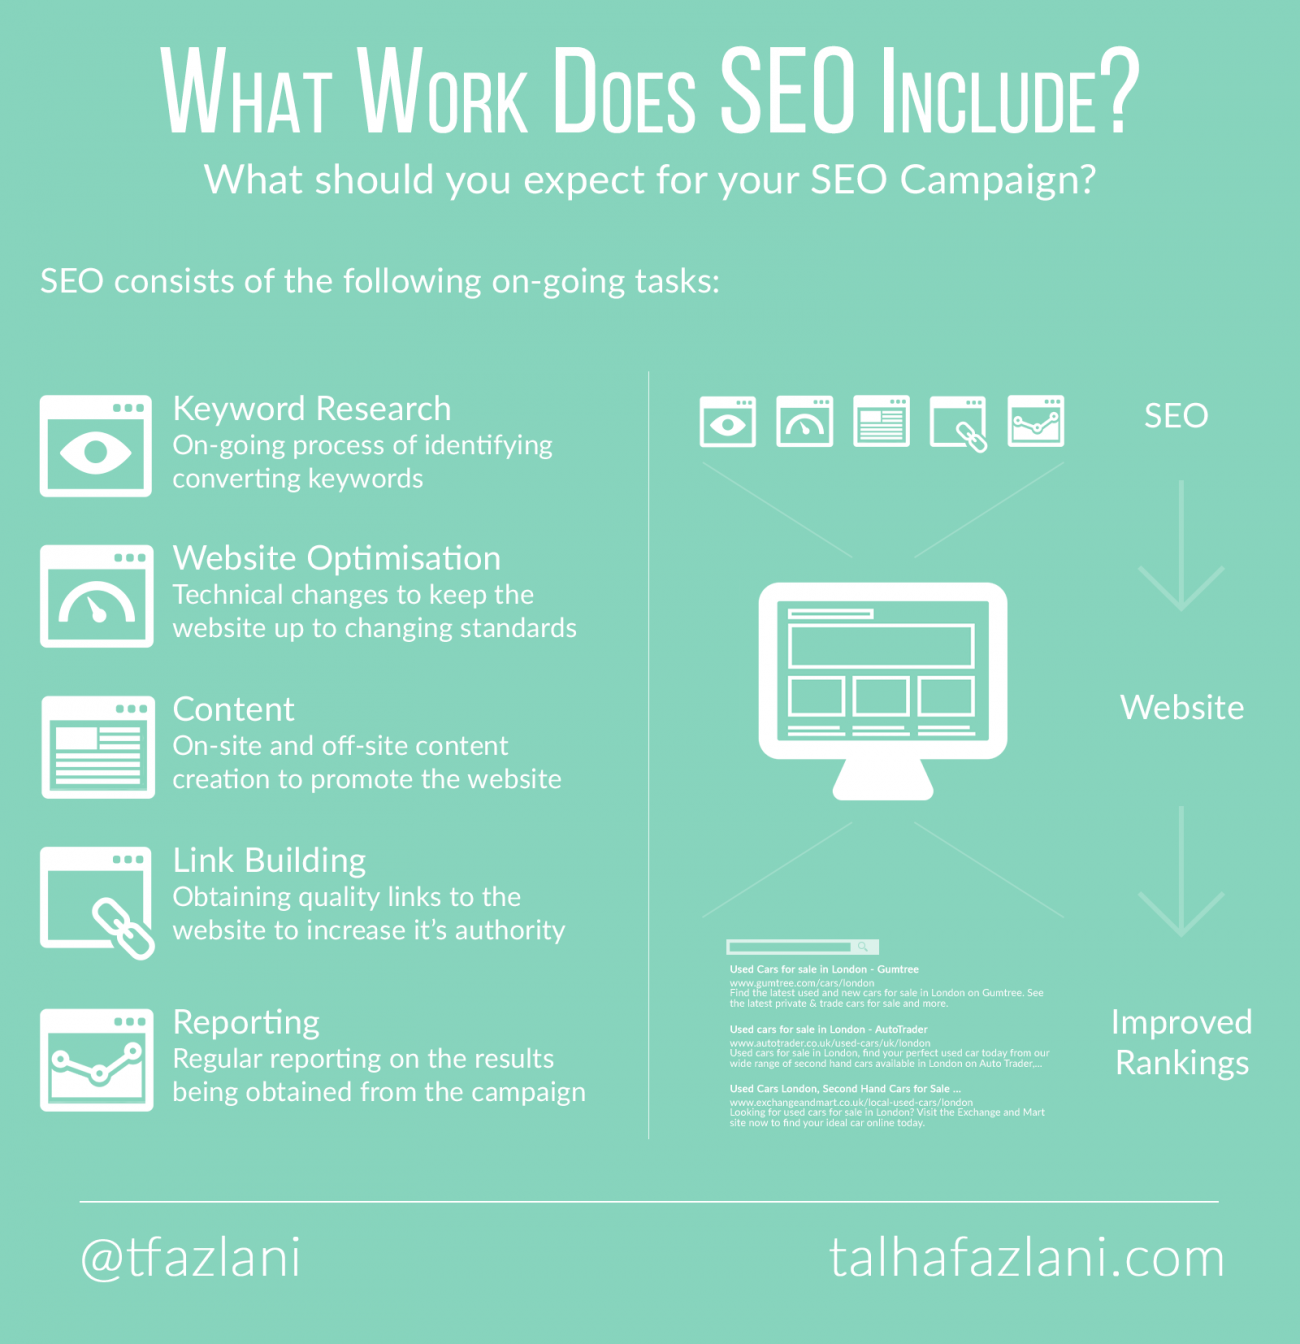 What work does SEO include?